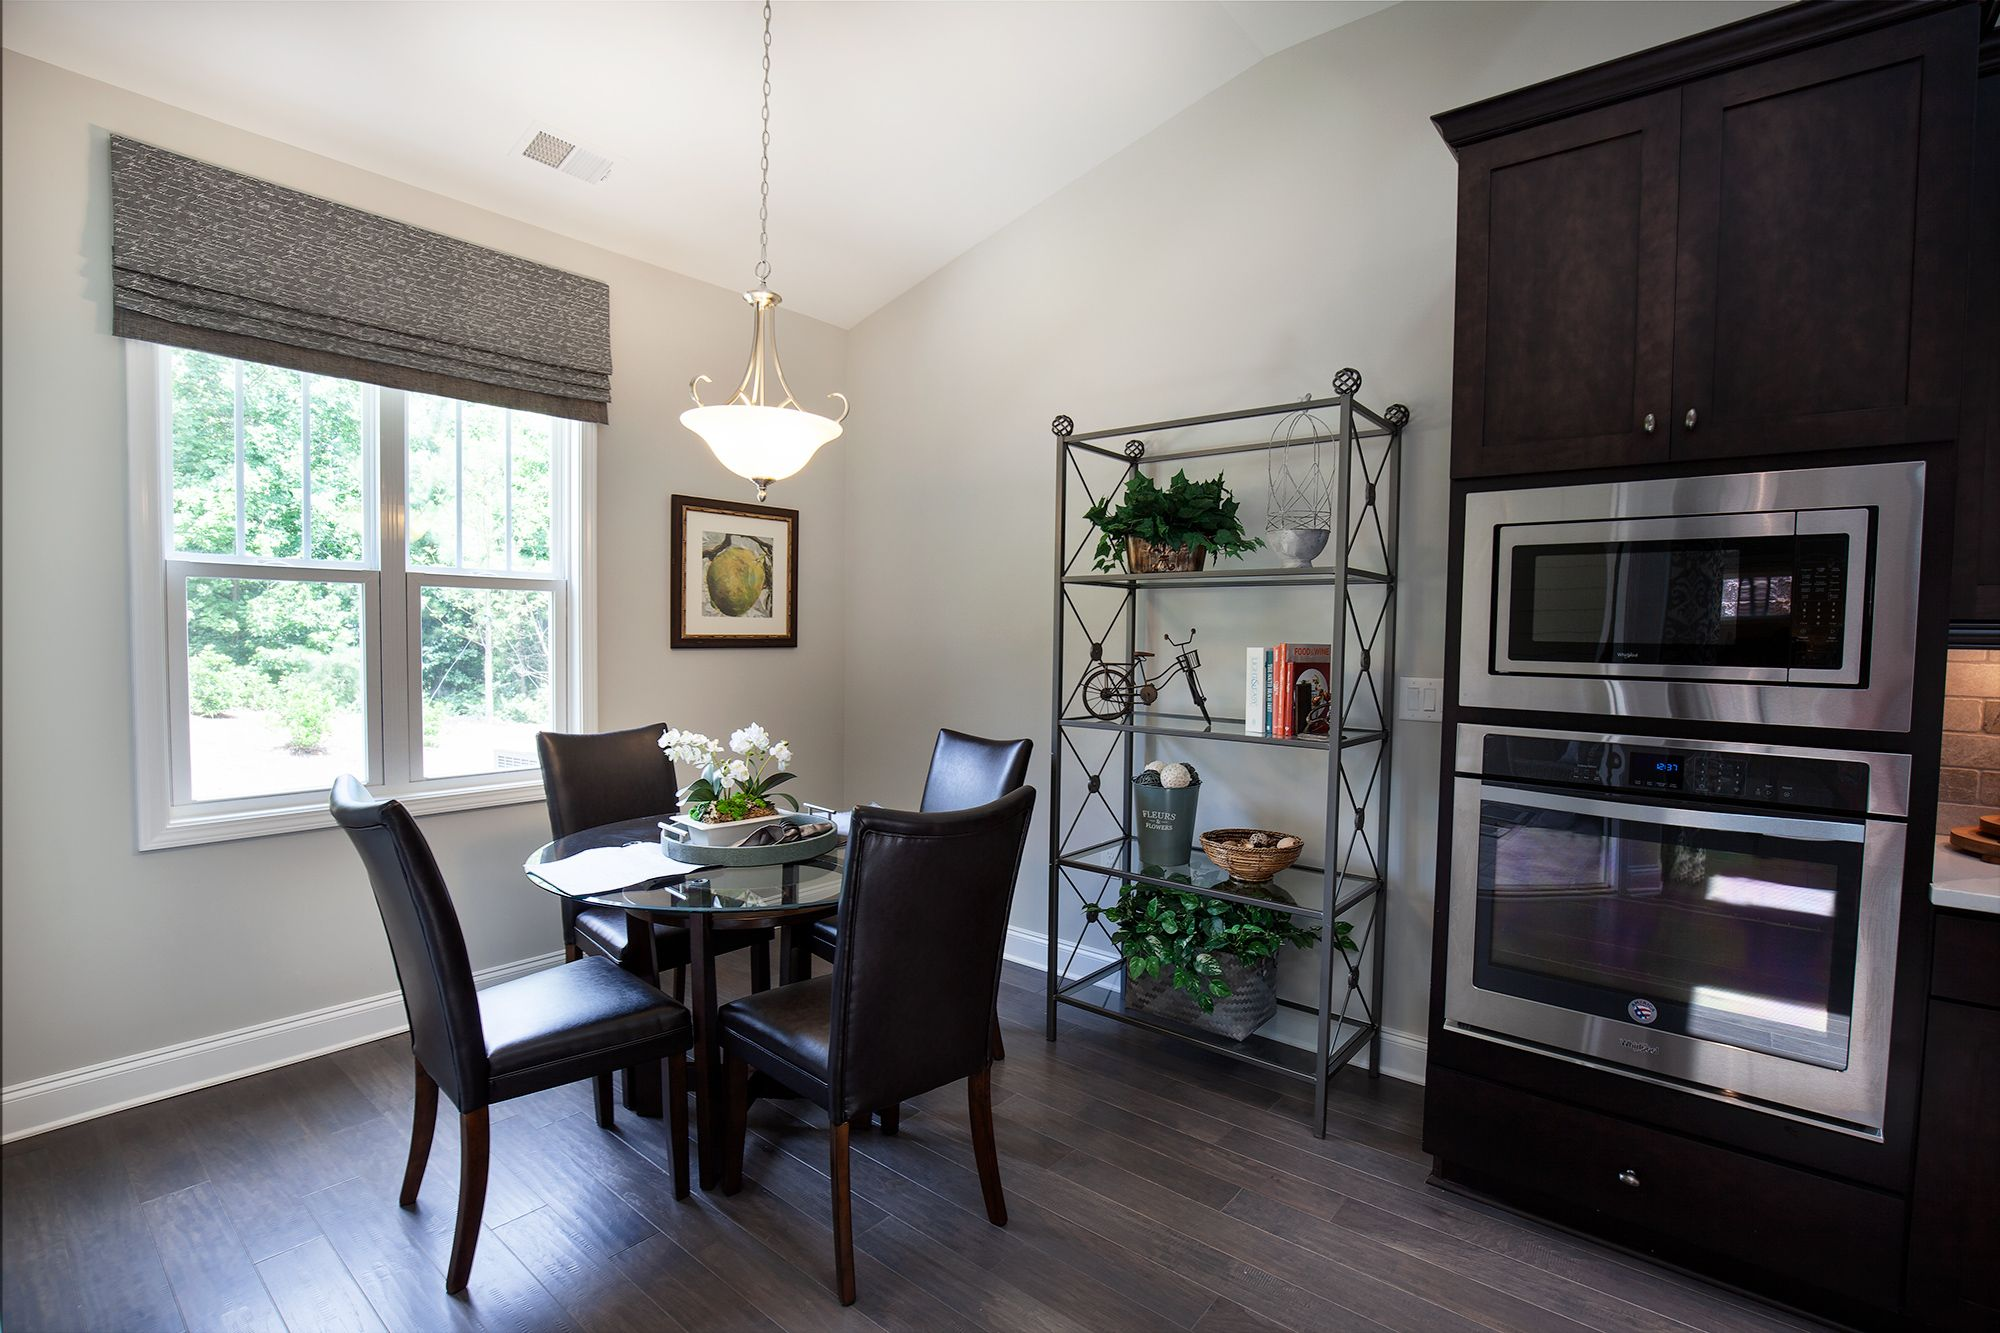 Kitchen featured in The Dogwood Villa Home By The Orchards Group in Atlanta, GA